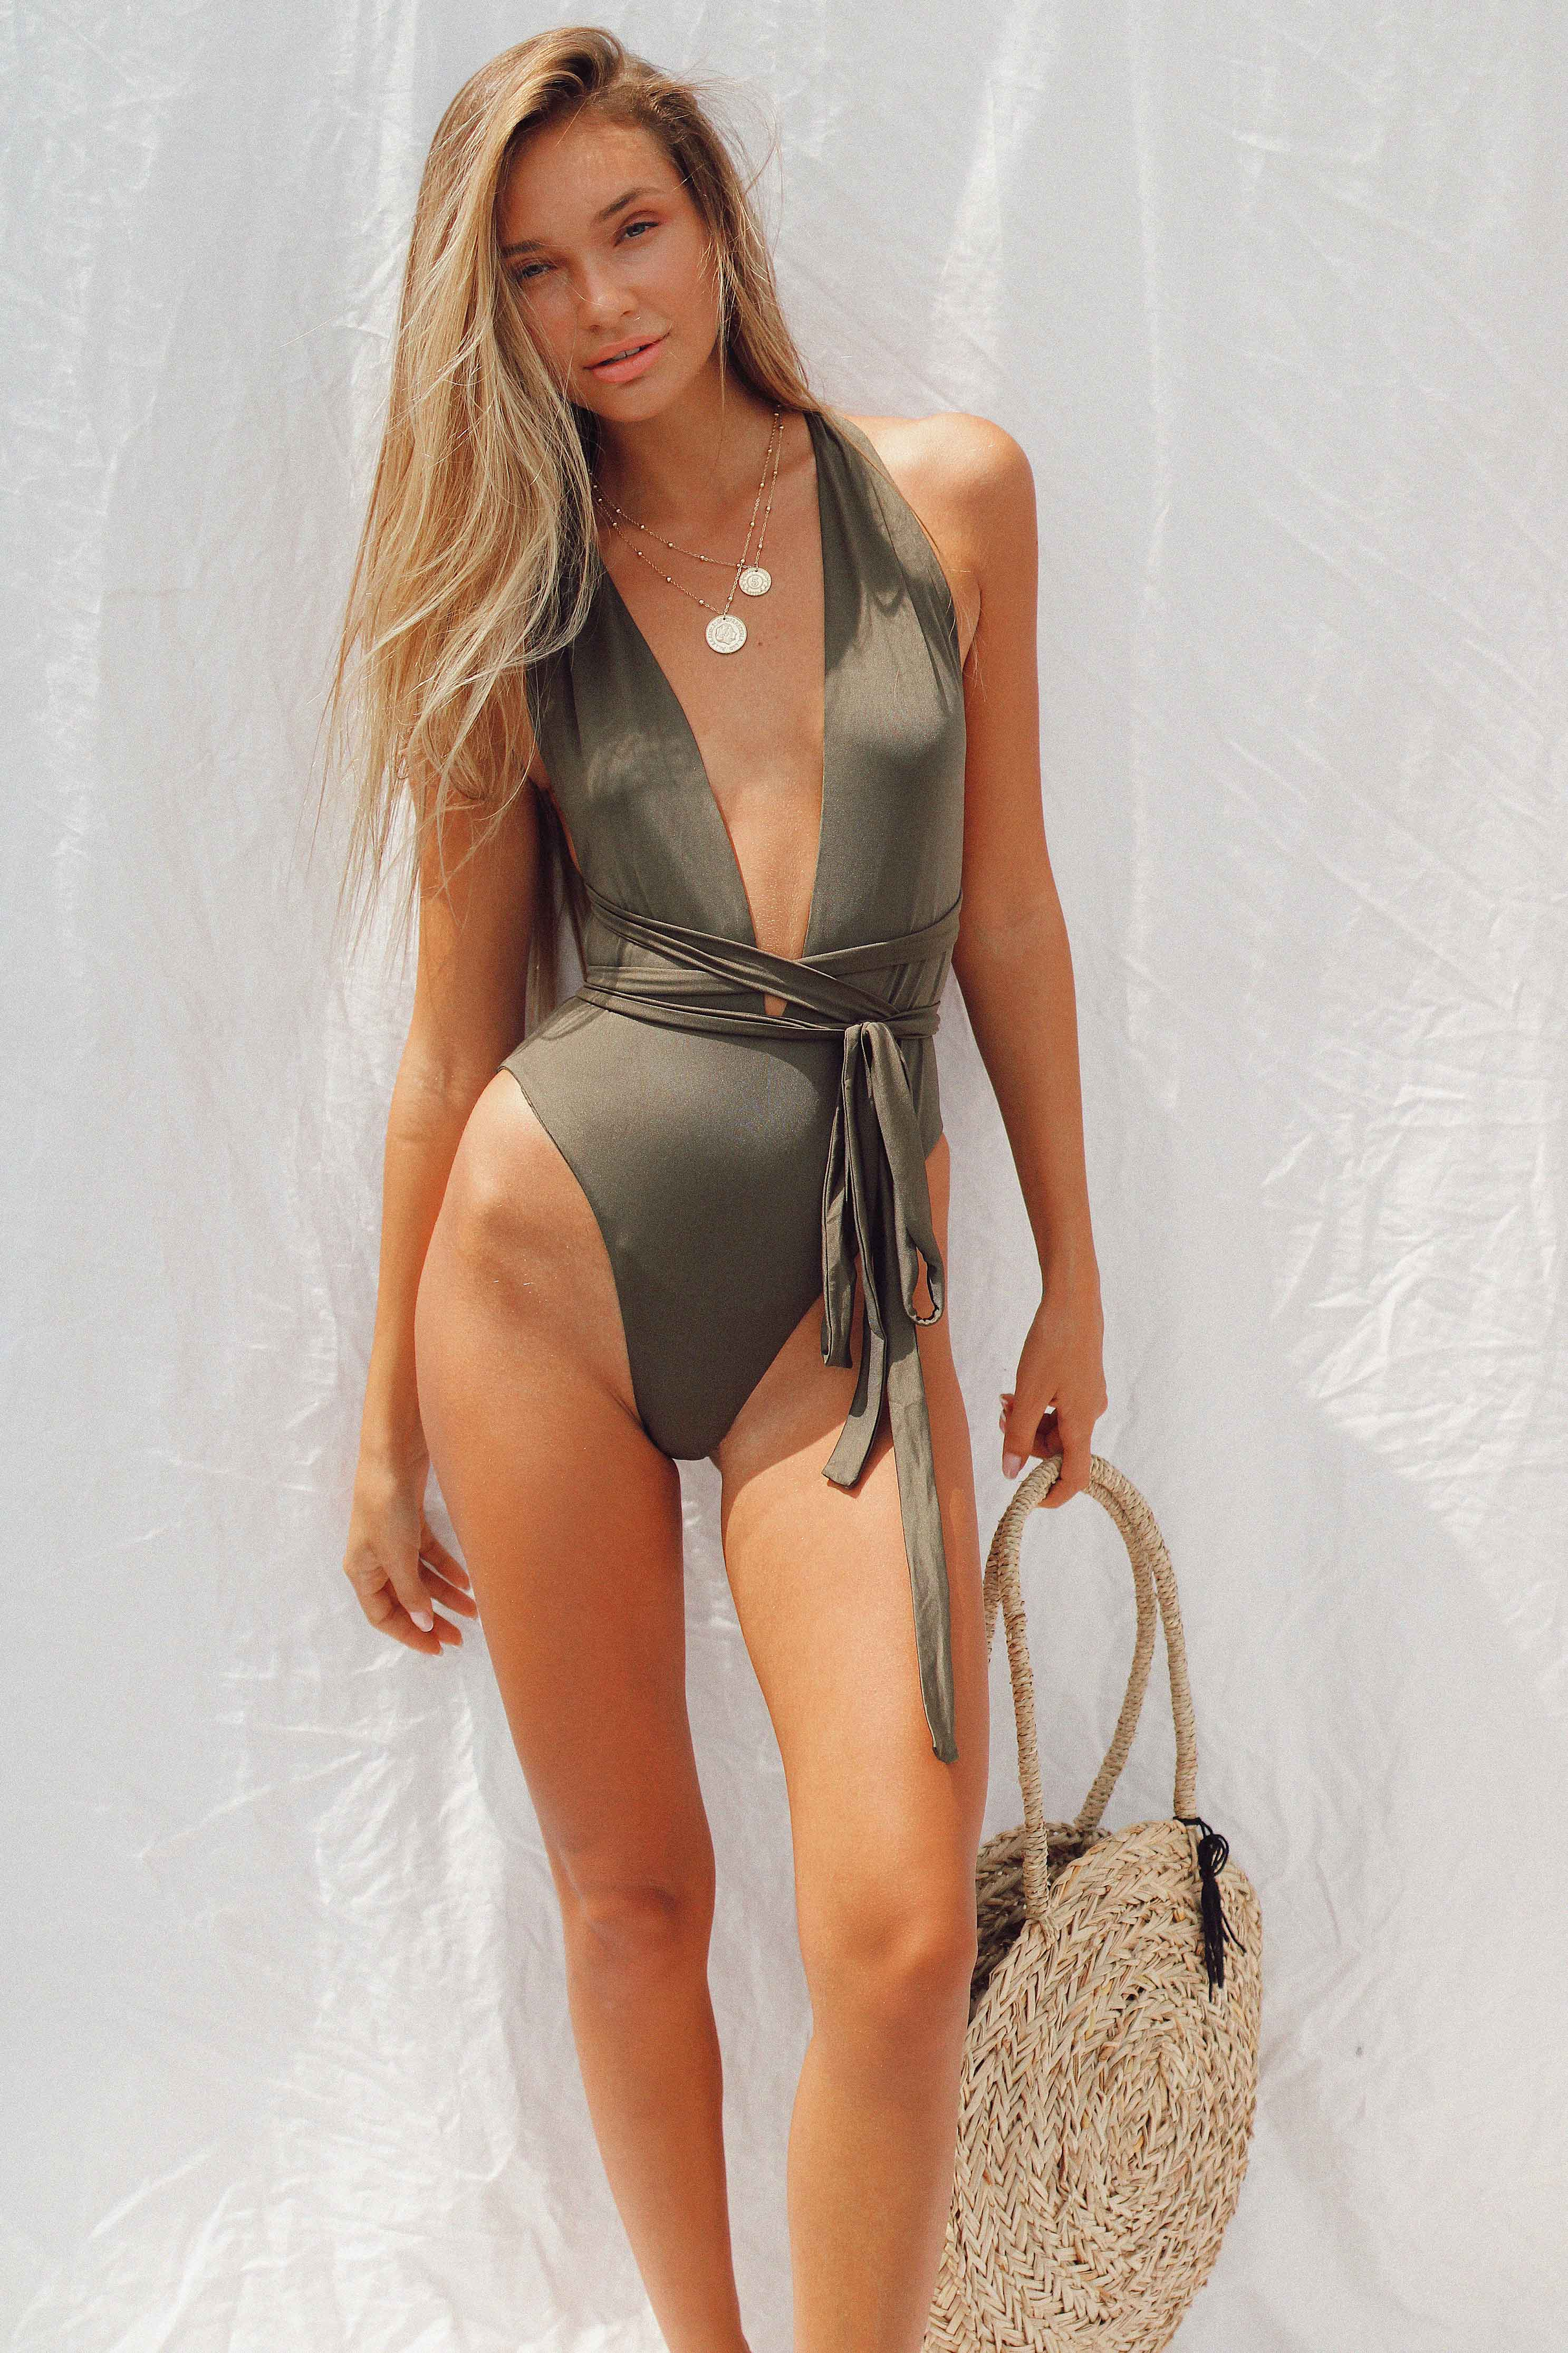 MALLORCA SWIMSUIT | Women's Online Shopping | CHICLEFRIQUE